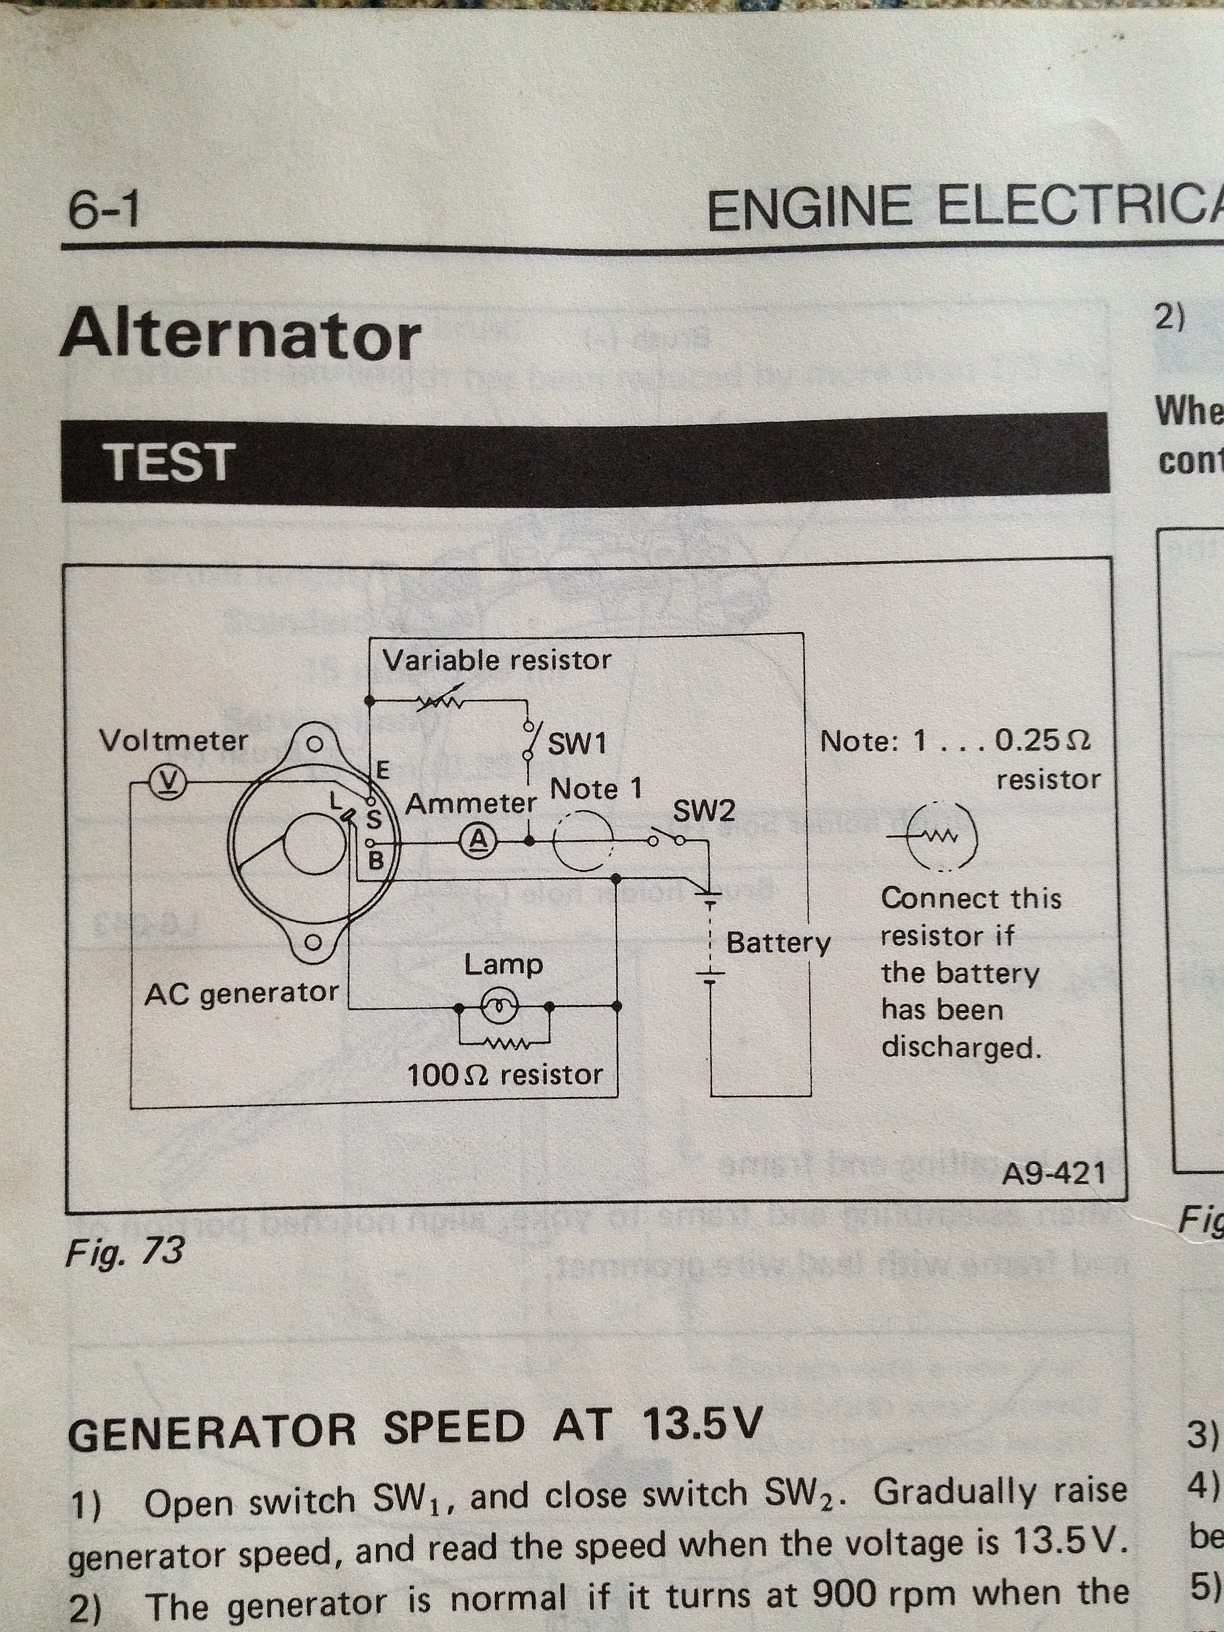 Subaru Ea82 Wiring Diagram Another Diagrams Brat 1985 Gl Wagon Alternator Old Gen 80 S Rh Ultimatesubaru Org Loyale 82